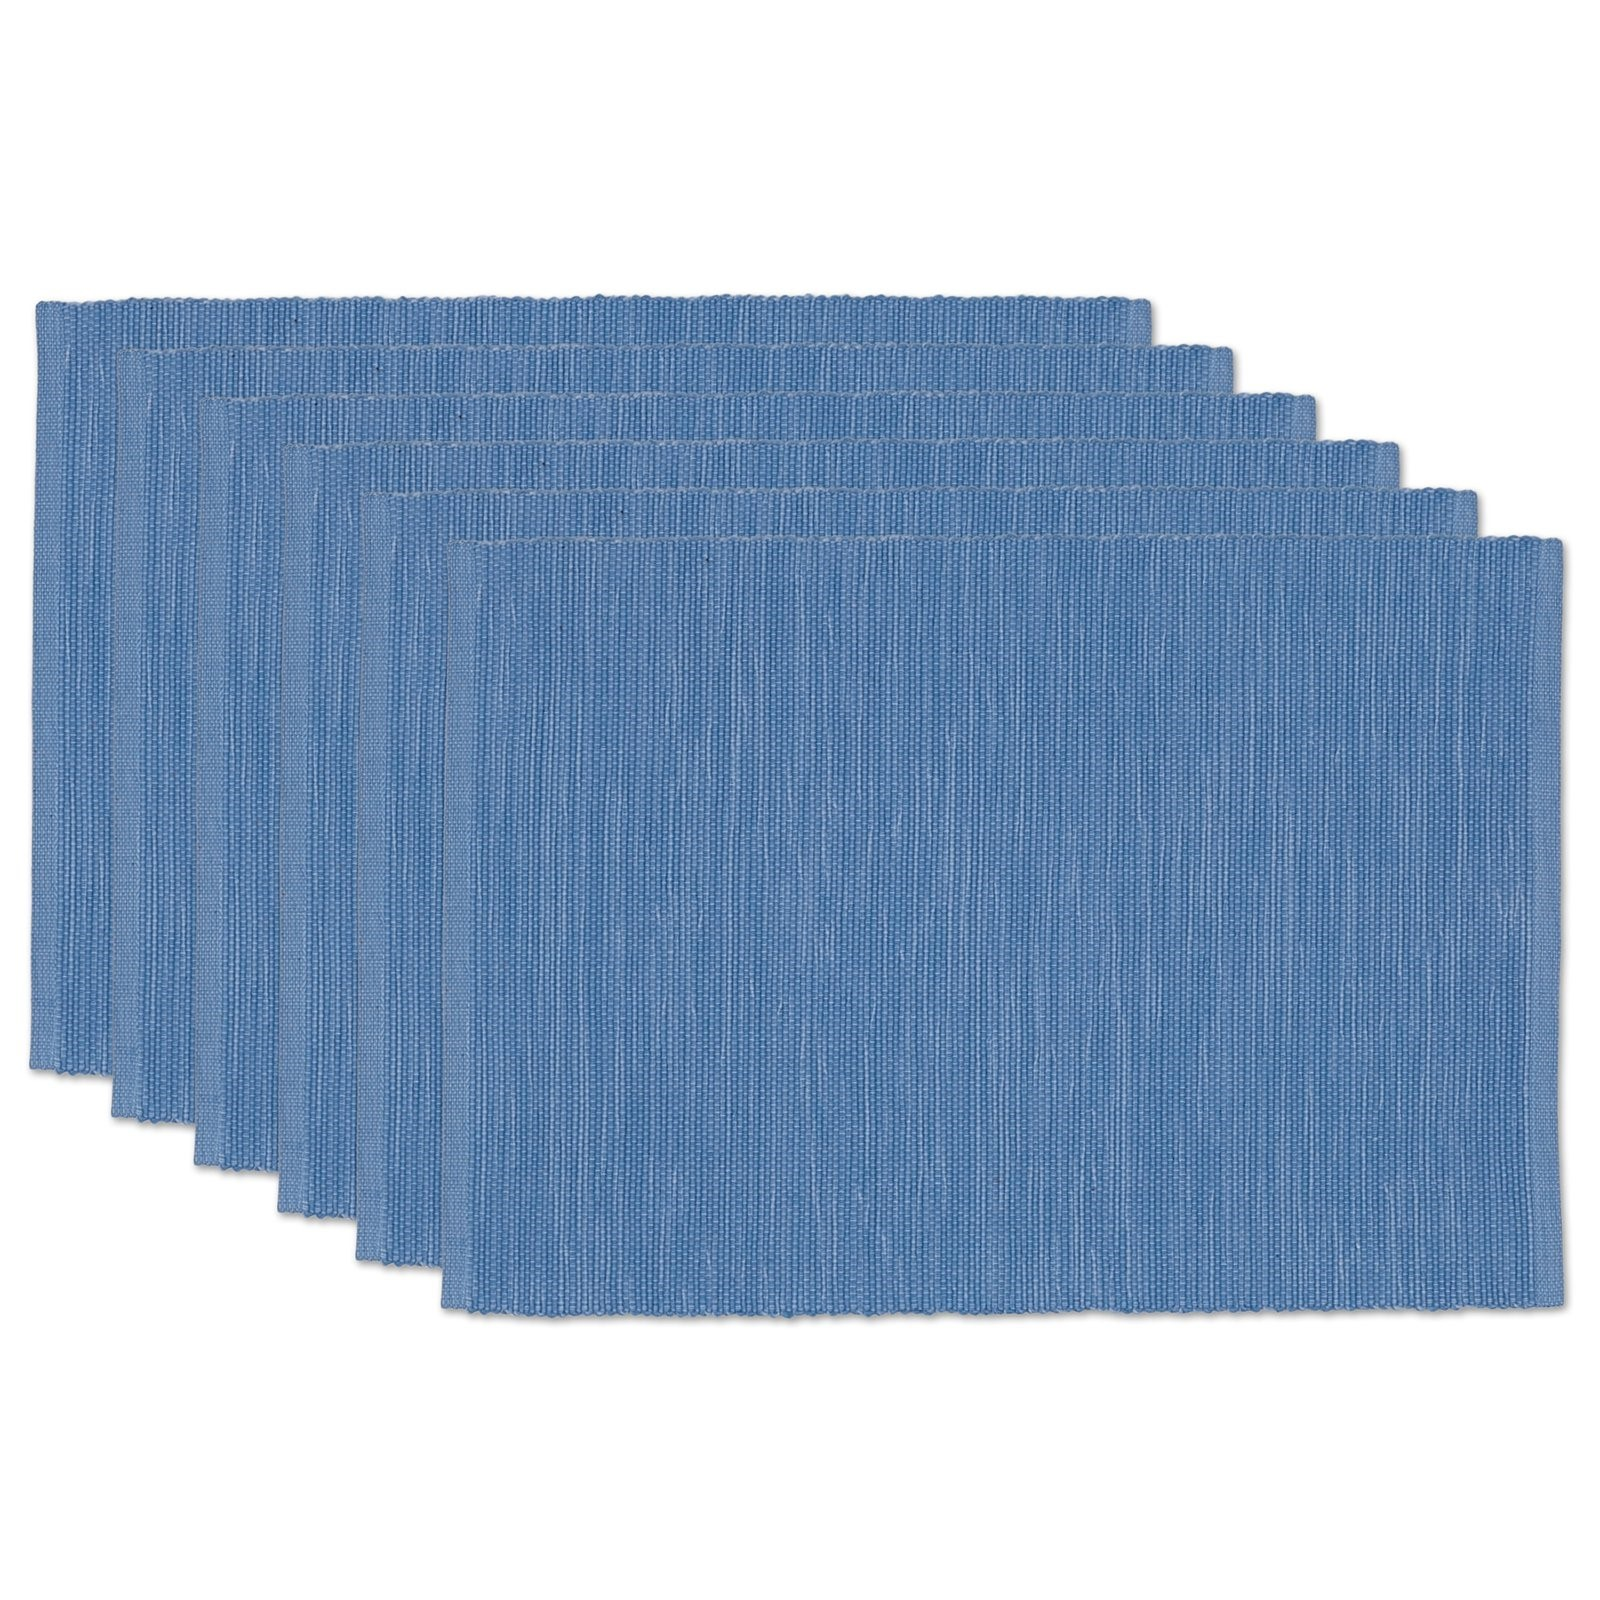 Design Imports Tonal Placemat Set of 6 by Design Imports